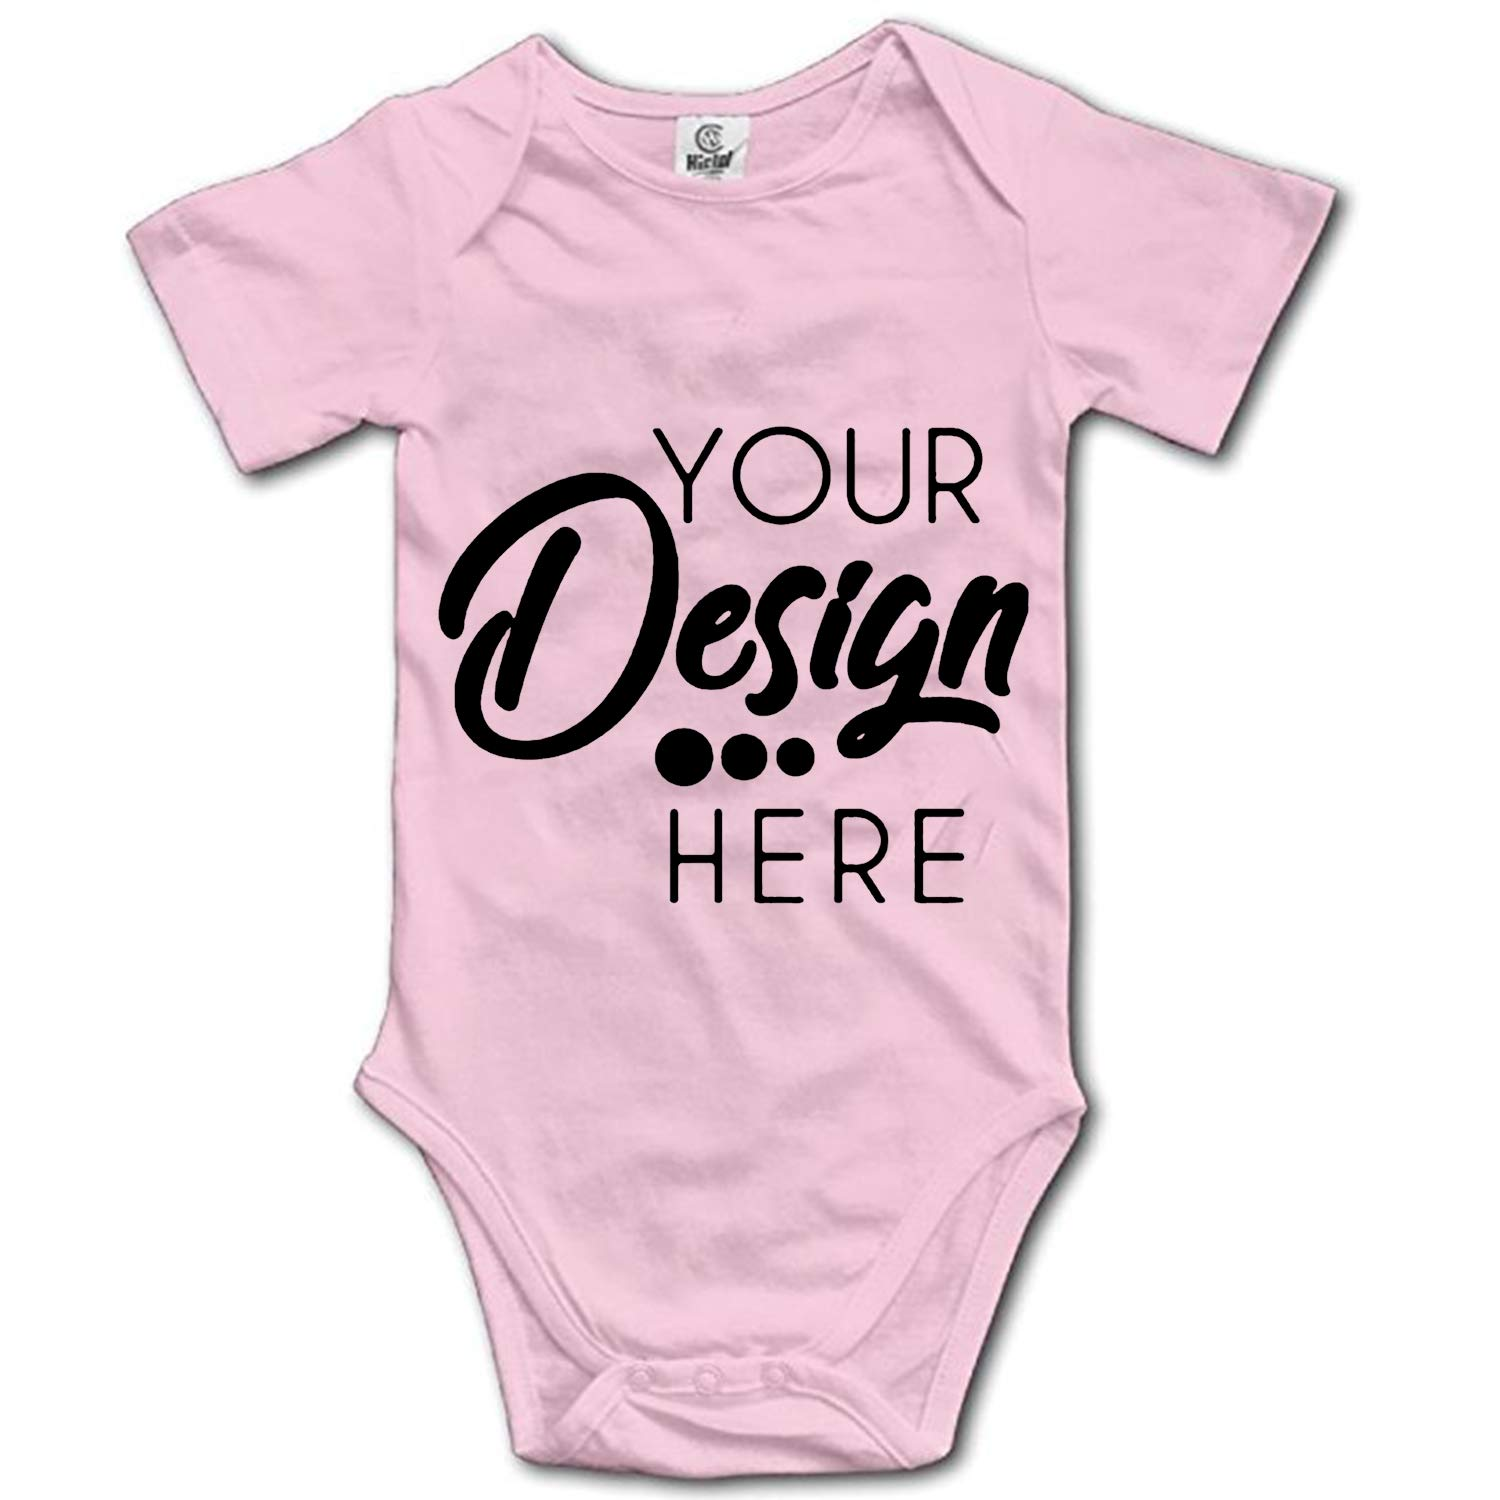 Sugar Skull Cotton Unisex Baby Infant Short Sleeve One-Piece Suit Bodysuits